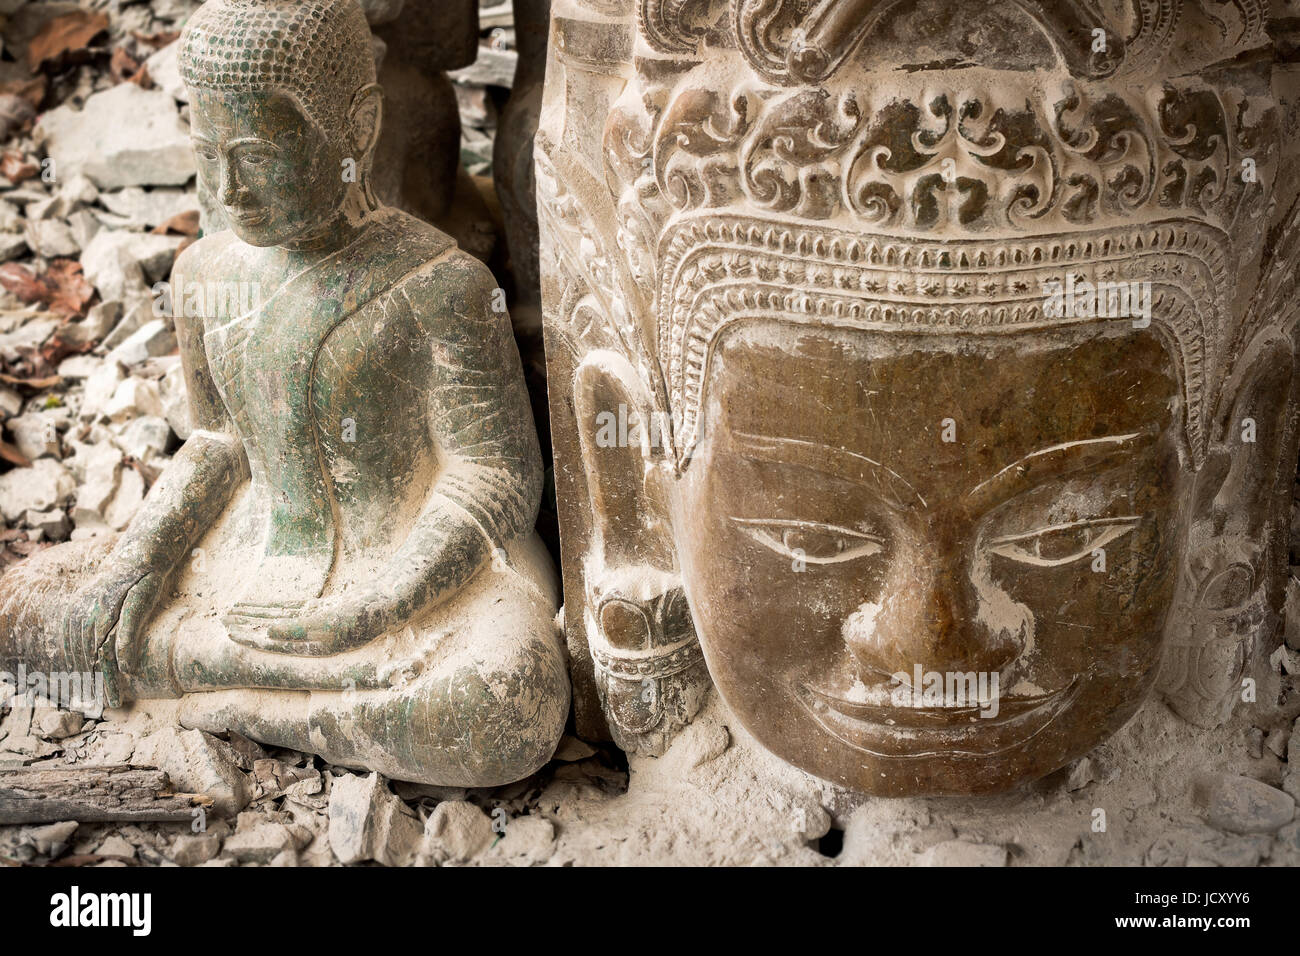 Bas relief statue background of khmer culture in angkor wat